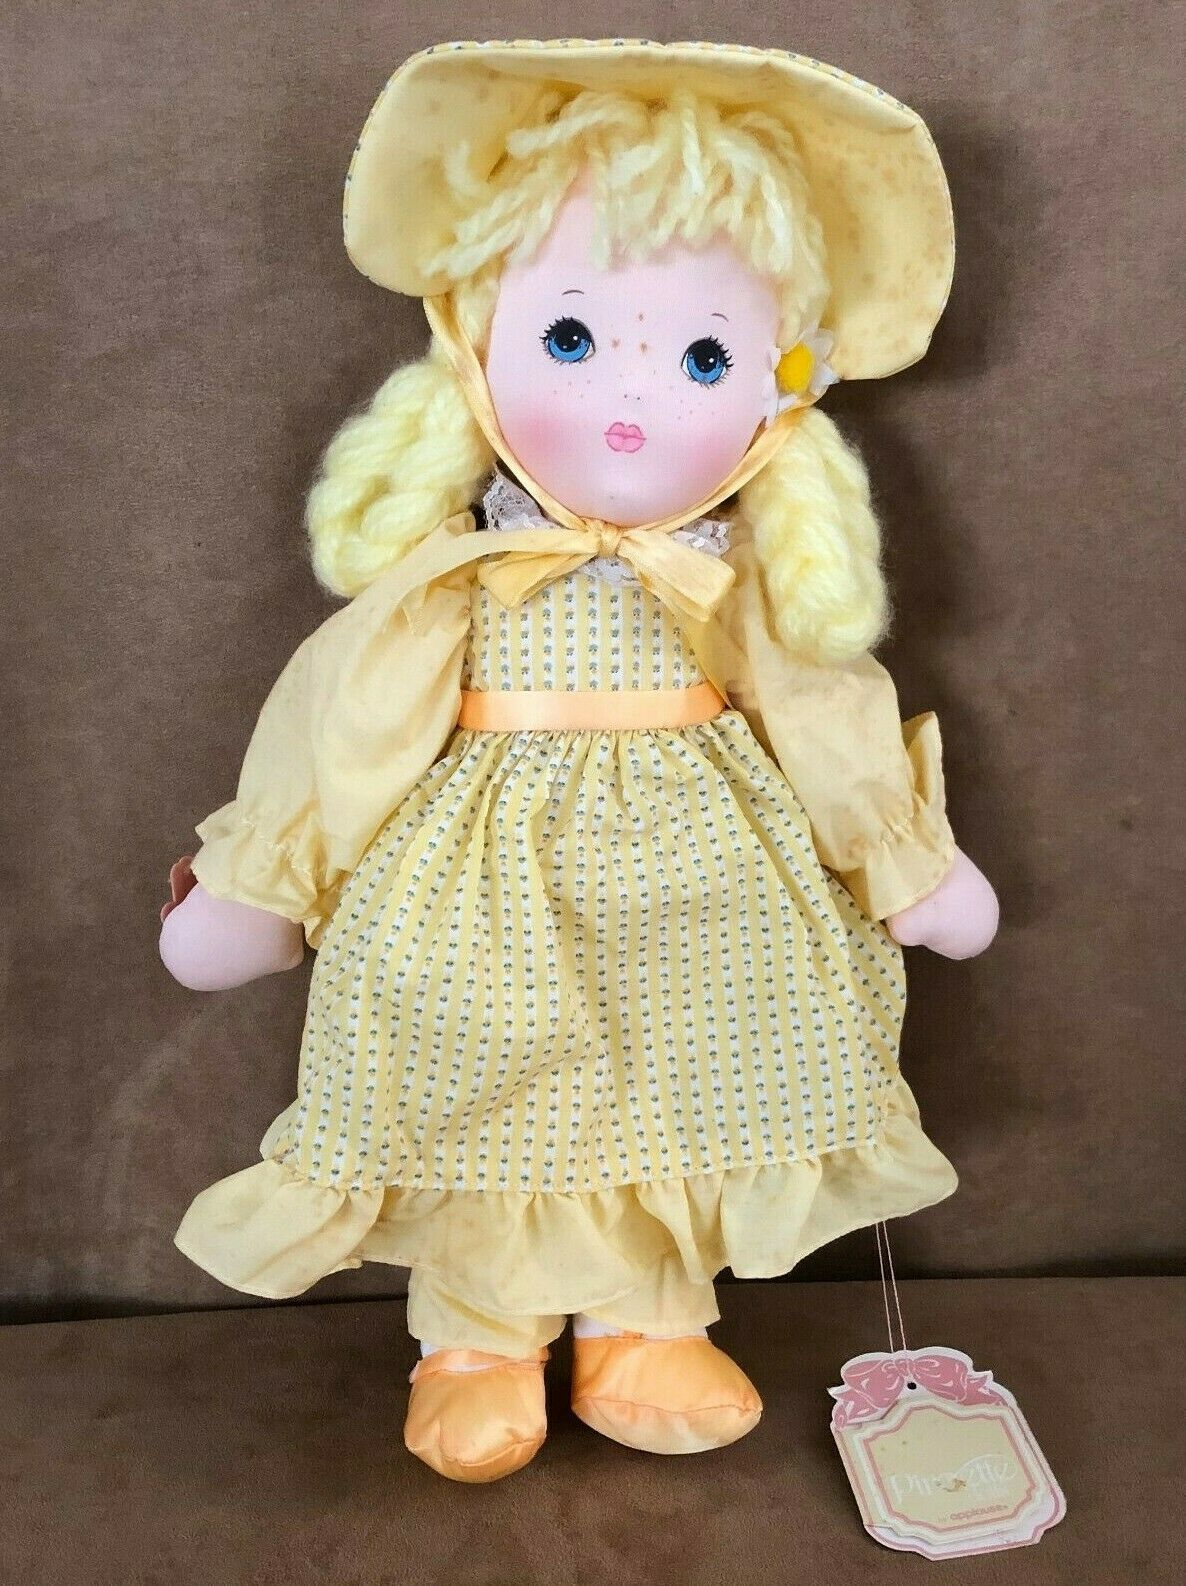 Applause Daisy soft body doll vintage yellow dress hair Piorette 16""